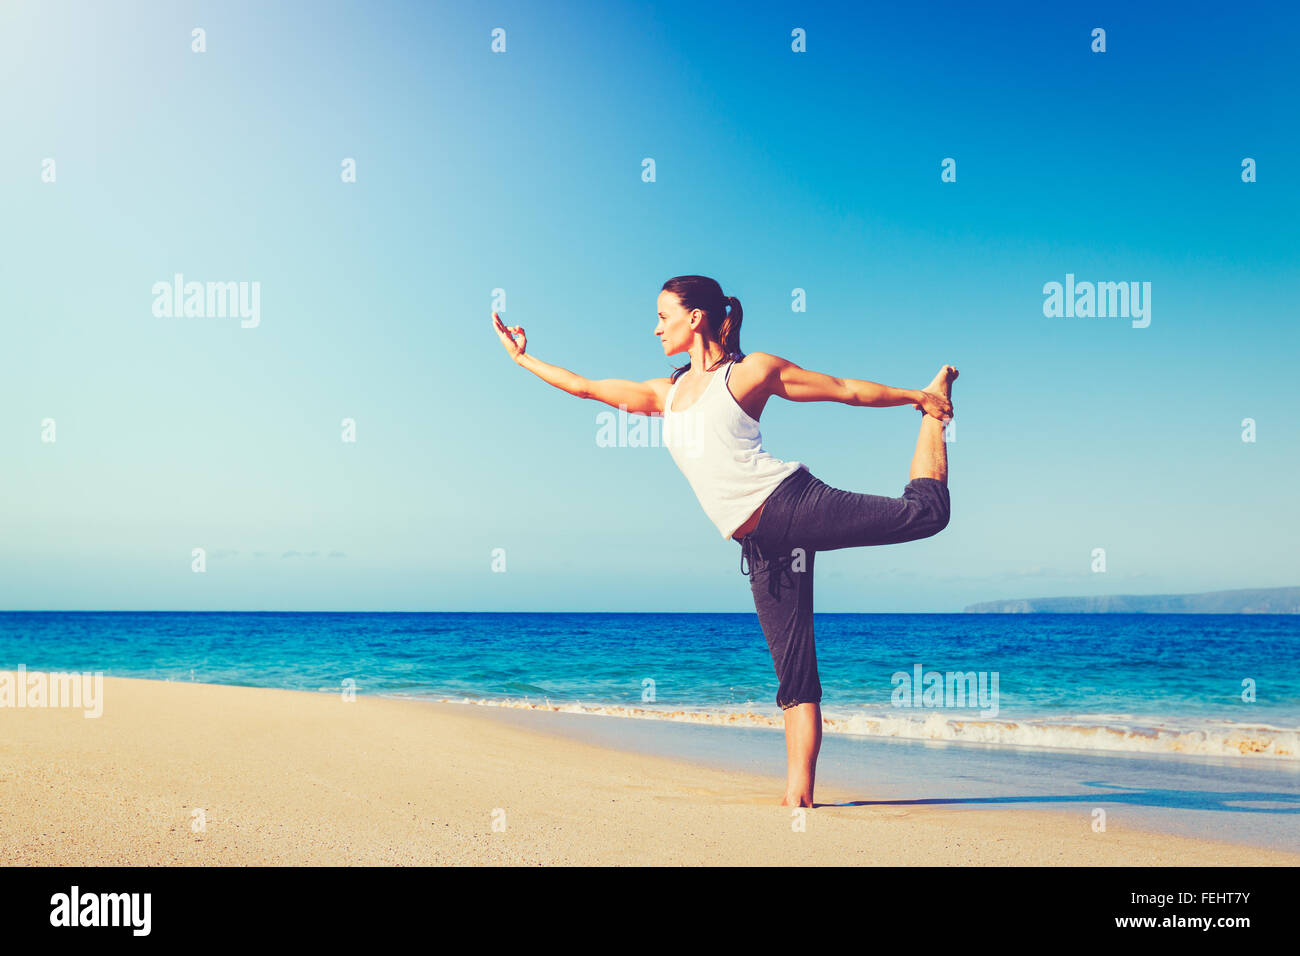 Healthy Lifestyle Concept, Beautiful young woman stretching practicing yoga on the beach - Stock Image